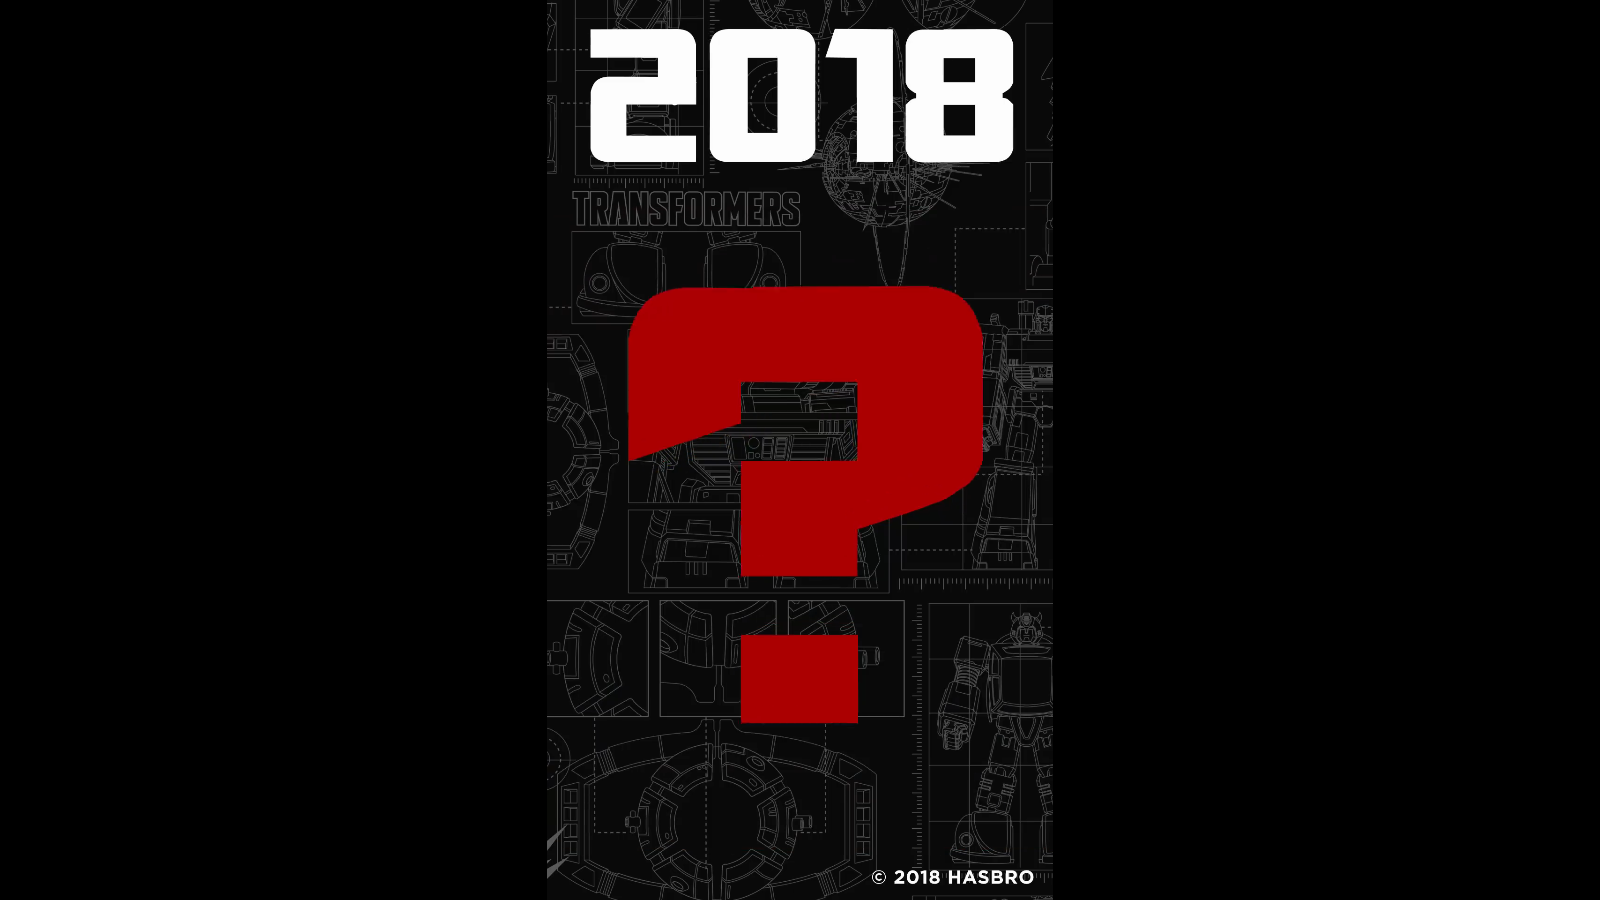 Transformers News: Hasbro Transformers 2018 Fan Vote: War for Cybertron Pairings, Voting Opens February 20th